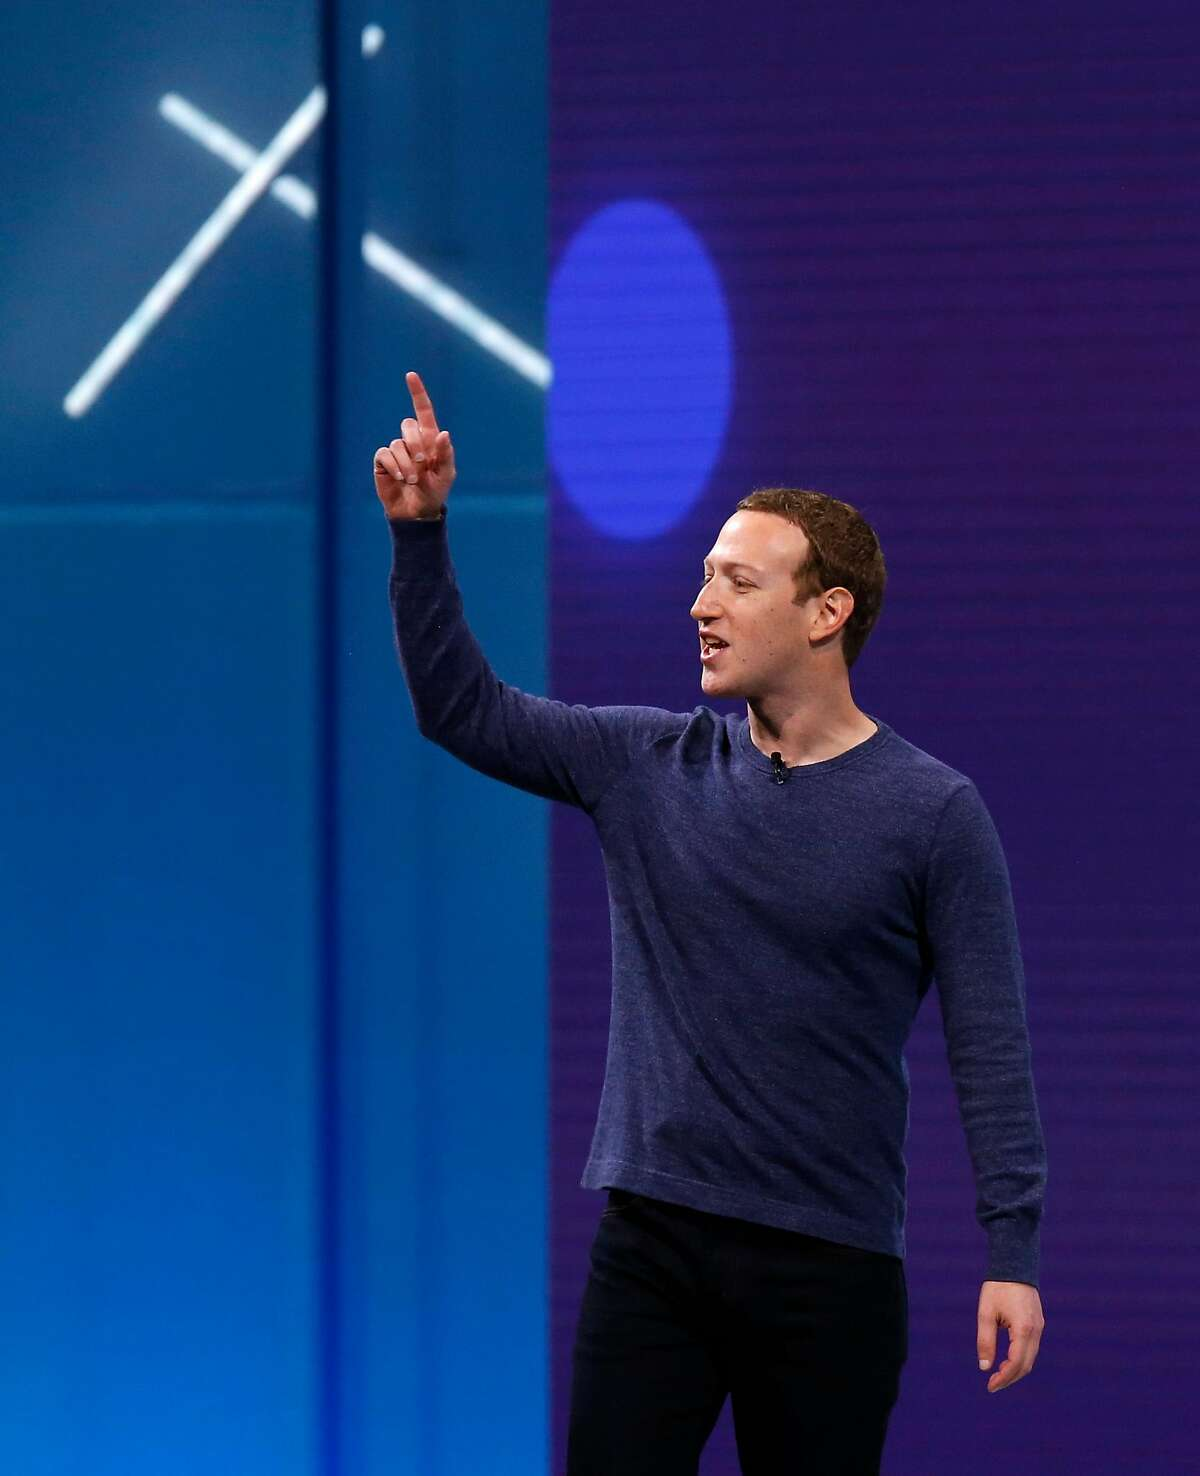 Facebook founder and CEO Mark Zuckerberg at the Facebook F8 developers conference in San Jose, Calif. on Tuesday, May 1, 2018. Federal regulators are weighing fines against the company.